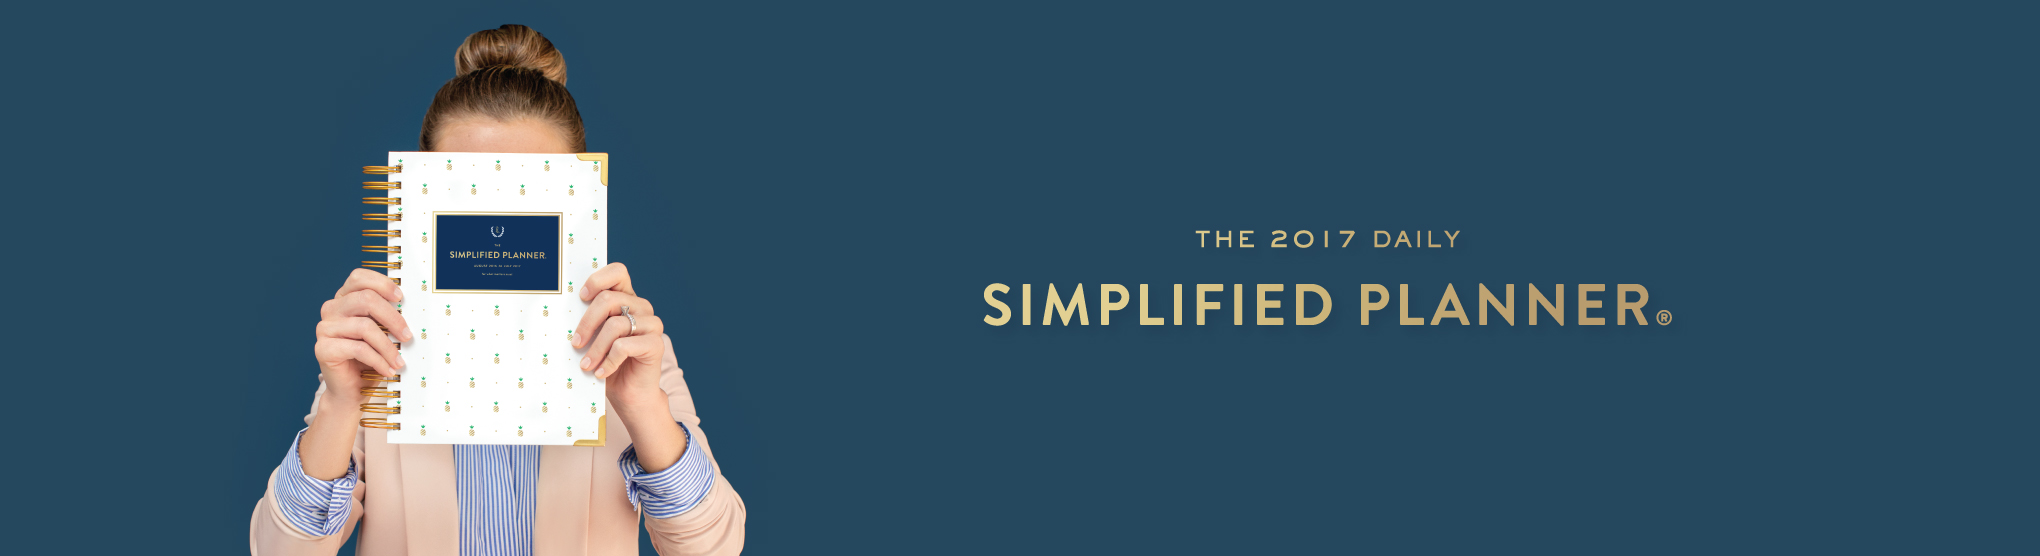 simplified-planner-collection-header_2048x2048